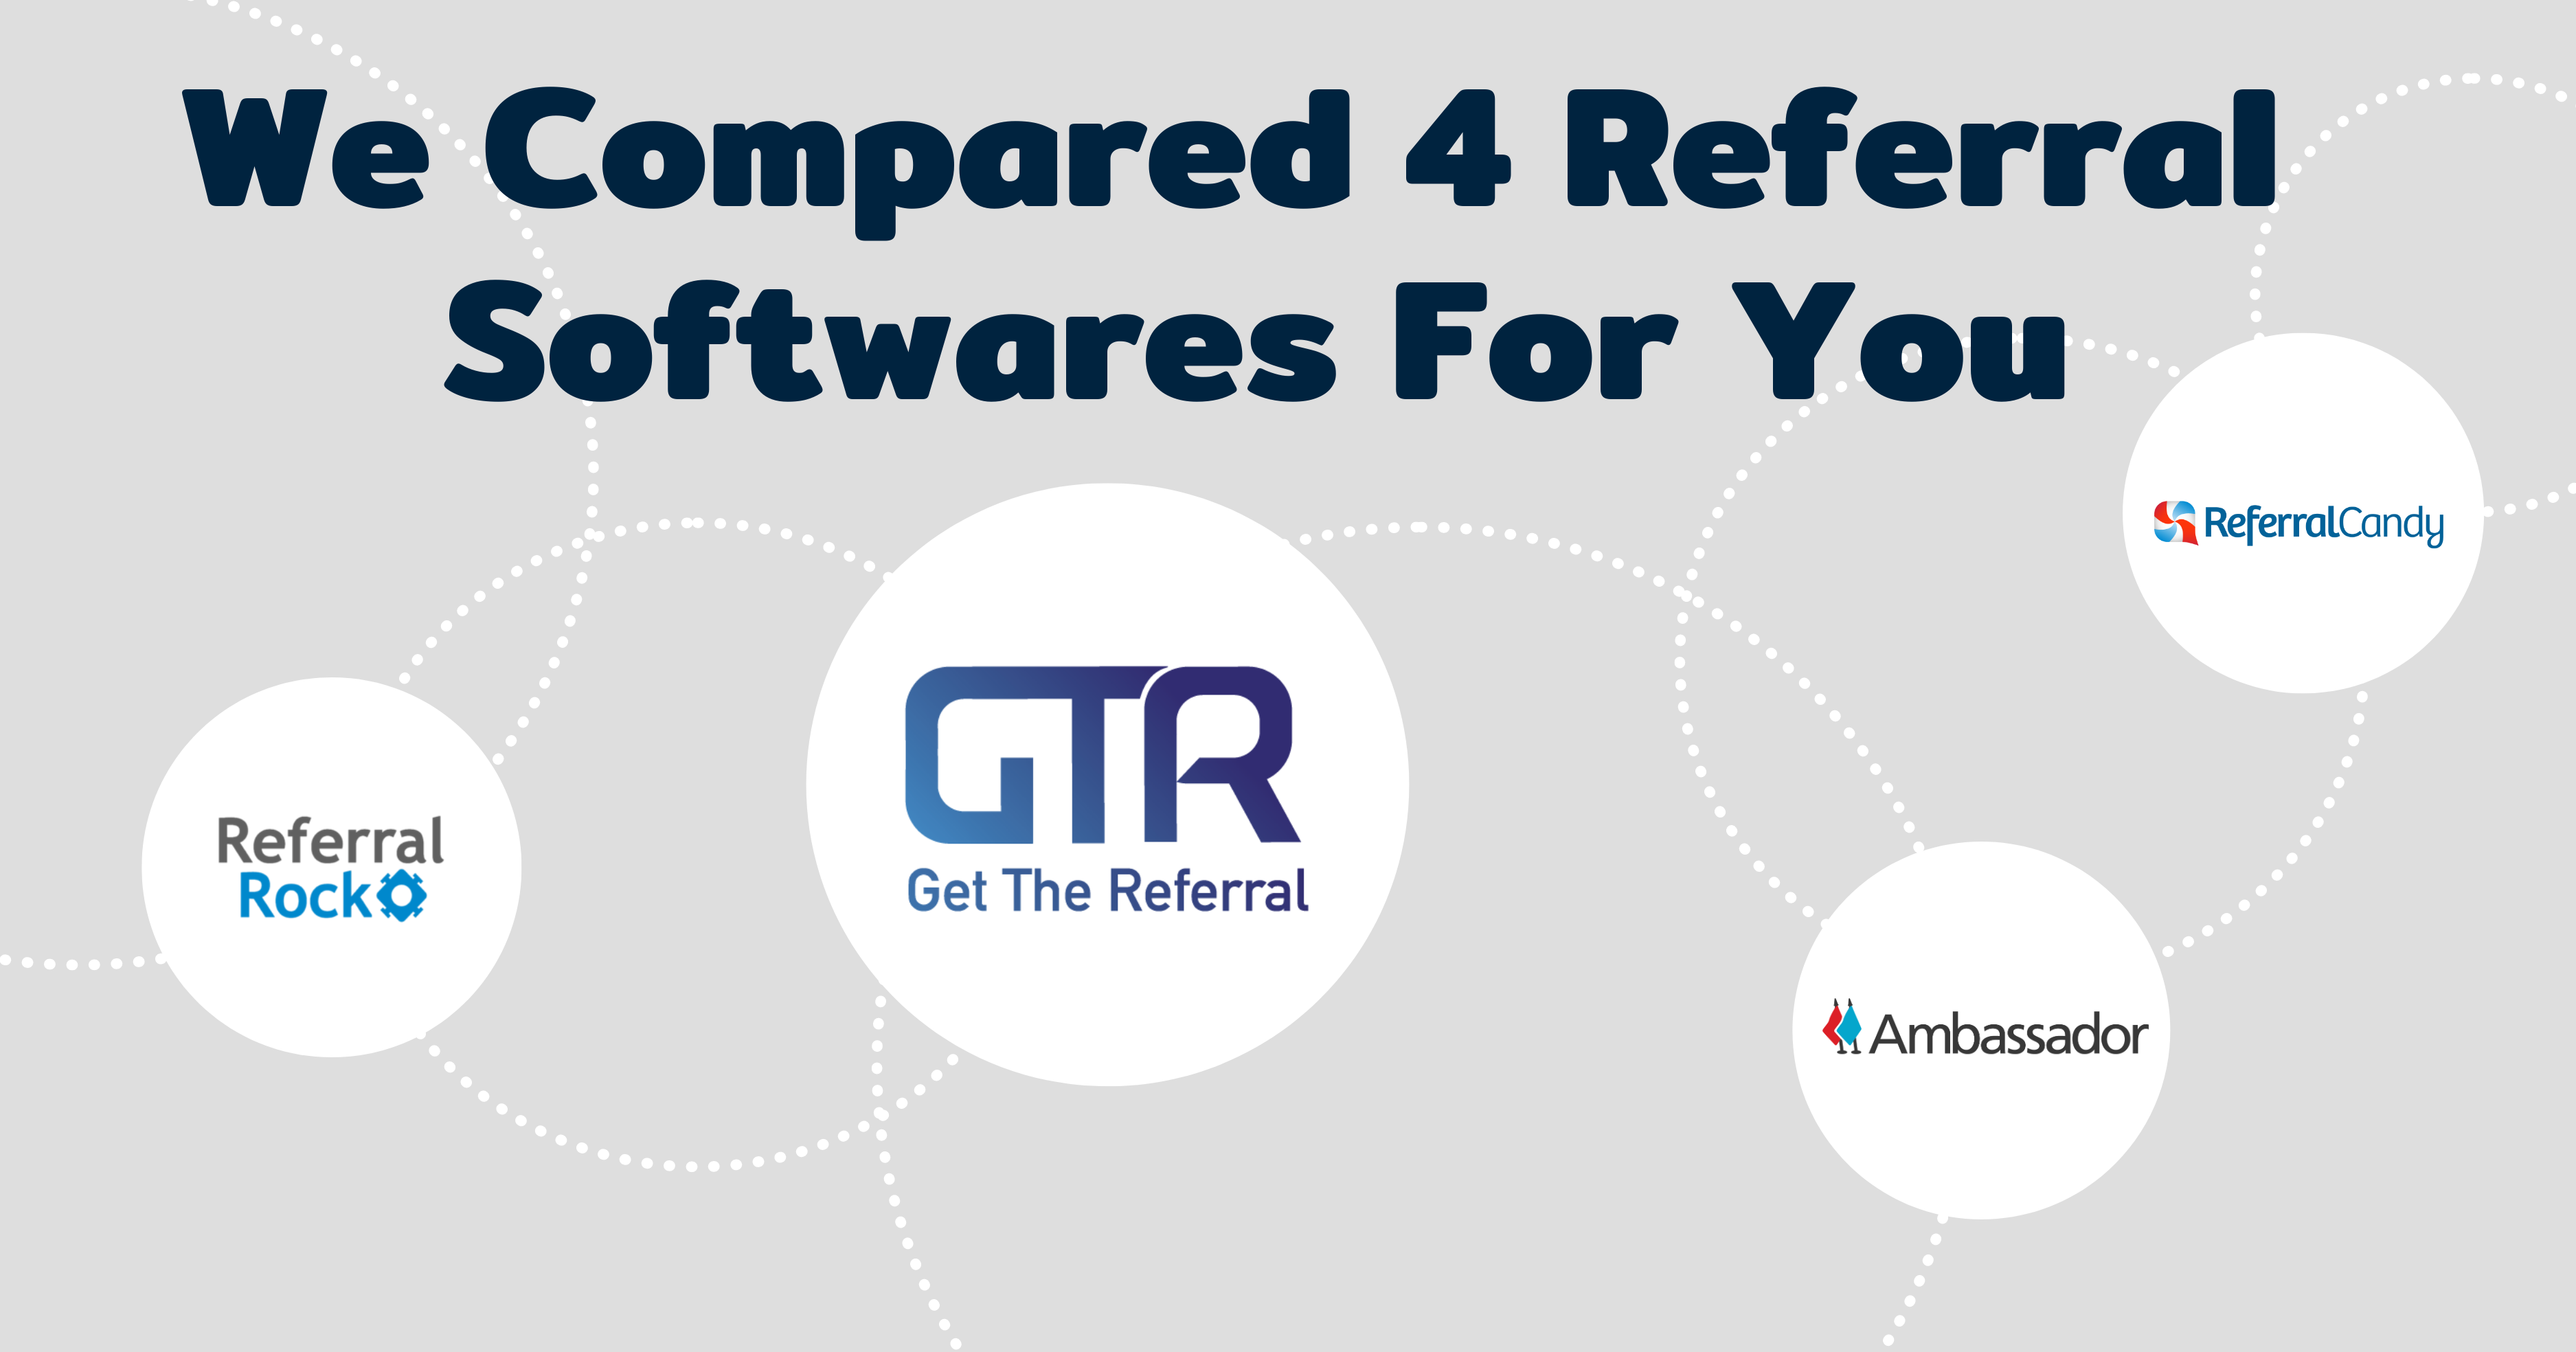 We compared 4 referral softwares for you_L